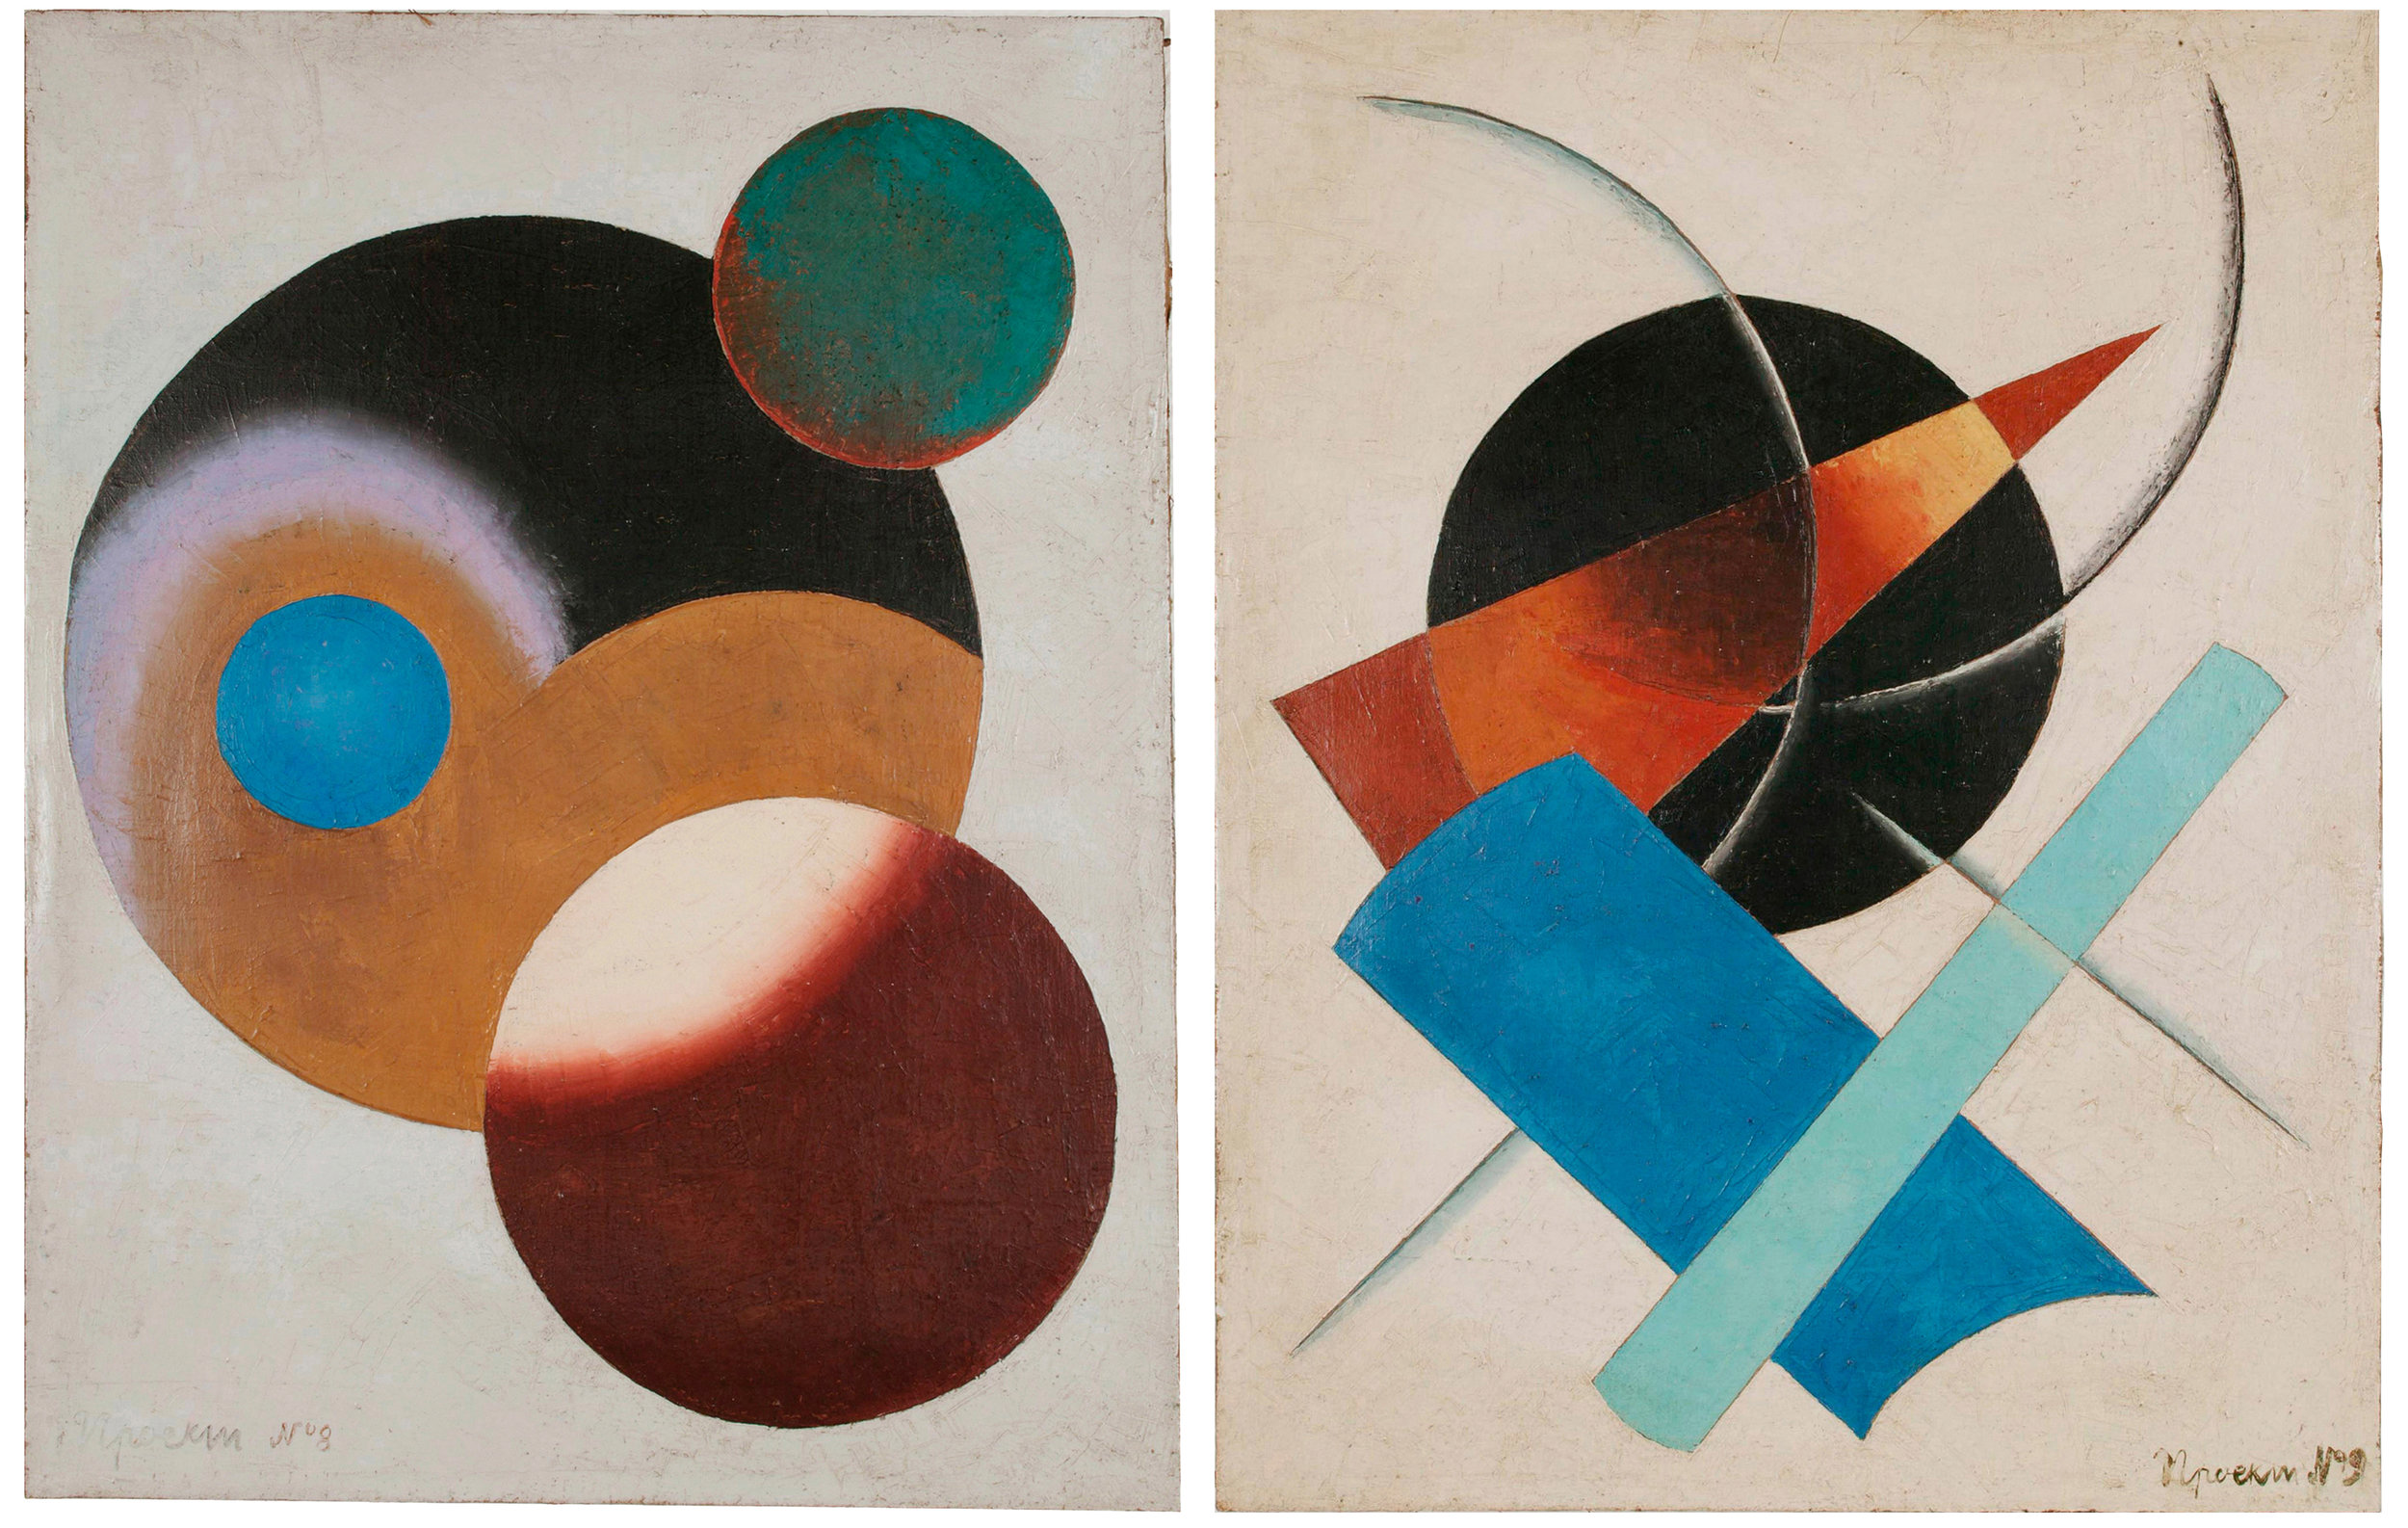 """Left:Unattributed. Unsigned. In the style of Alexander Rodchenko. Text in Russian, lower left front, translates to """"Project No 8"""". Oil on canvas. 65.5 x 50.5 cm.  Right: Unattributed. Unsigned. In the style of Alexander Rodchenko. Text in Russian, lower left front corner, translates to """"Project No. 9"""". Oil on canvas. 65.5 x 50.5 cm."""